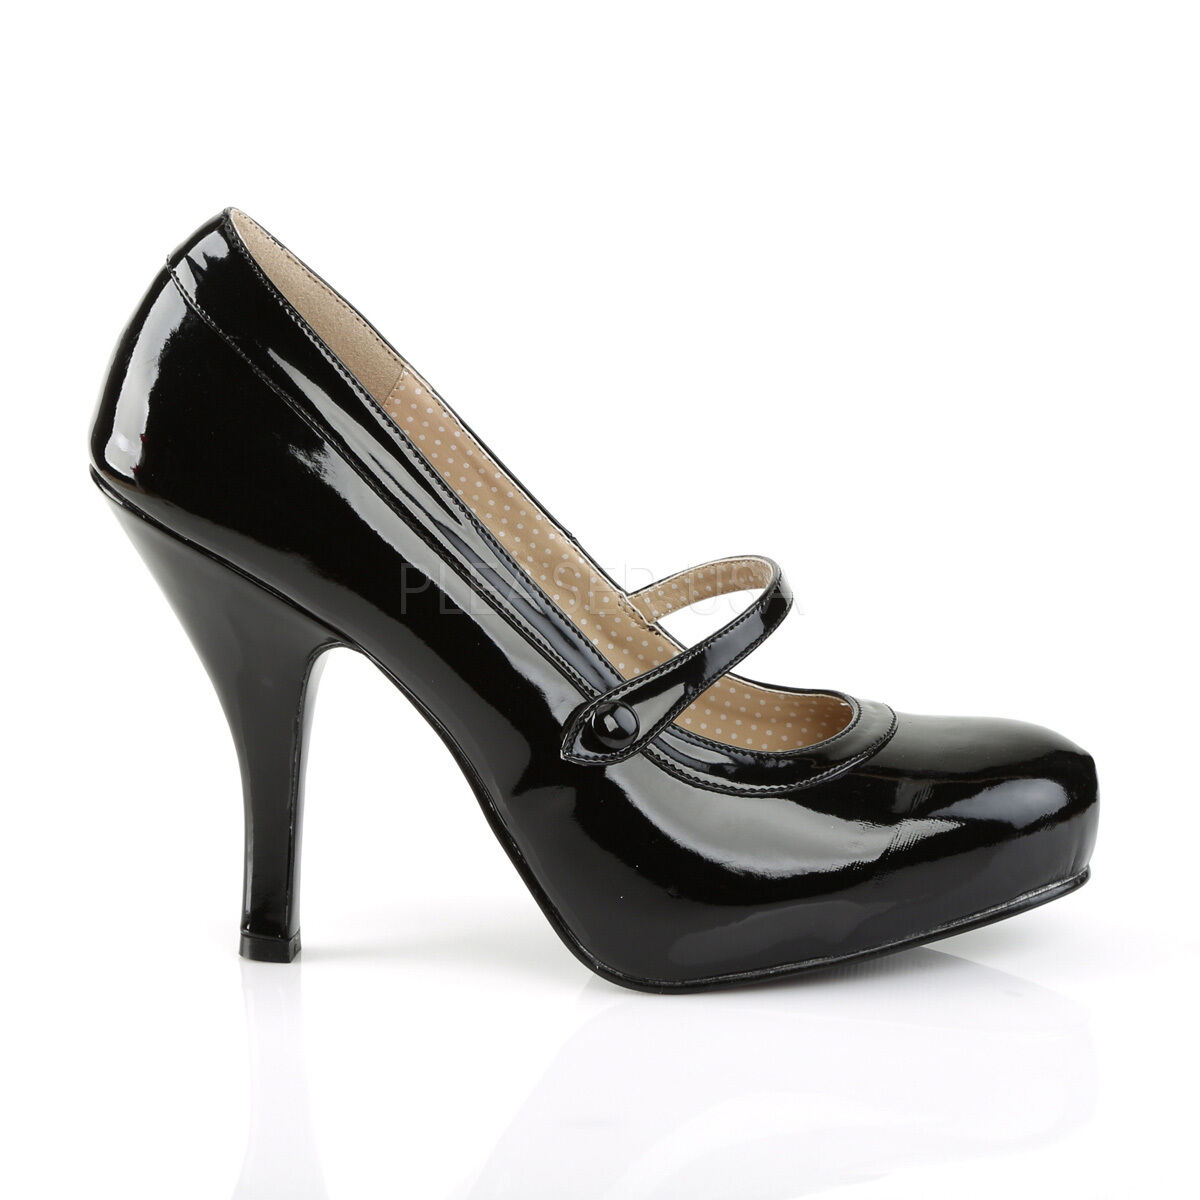 Sexy Retro Pinup 4 1 2    Heel Hidden Platform Black Patent Mary Jane Pumps shoes b0b158